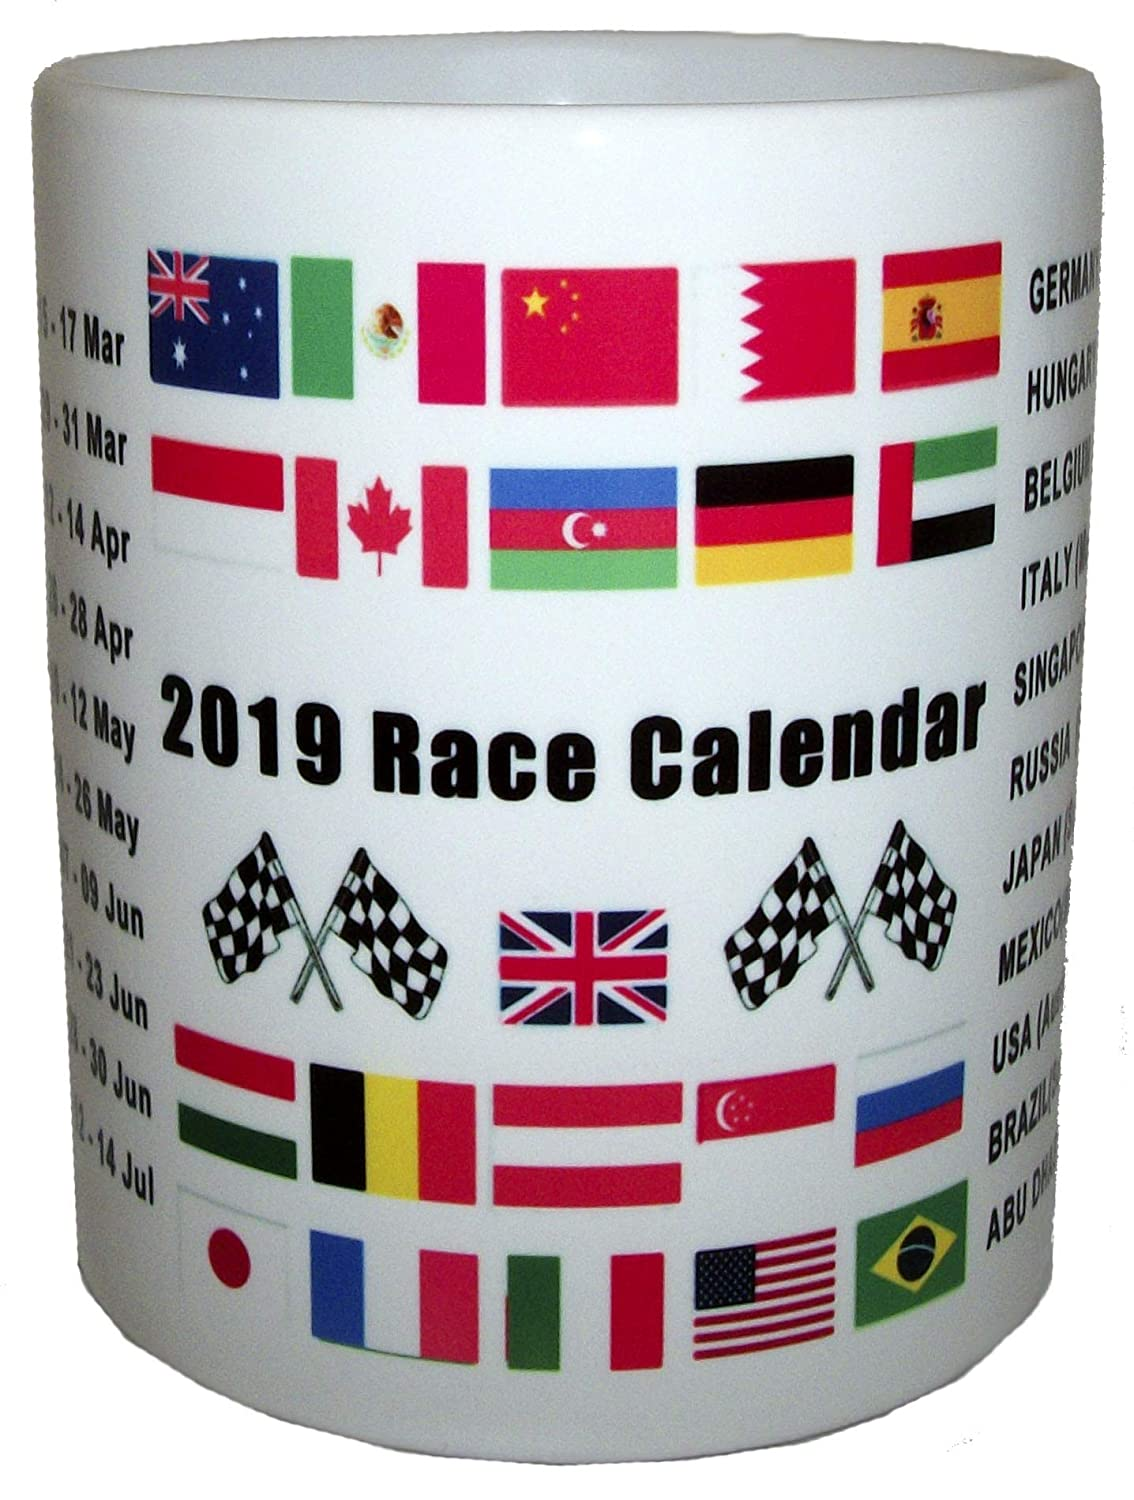 2019 Motor Car Racing Fixtures Race Calendar Ceramic Mug